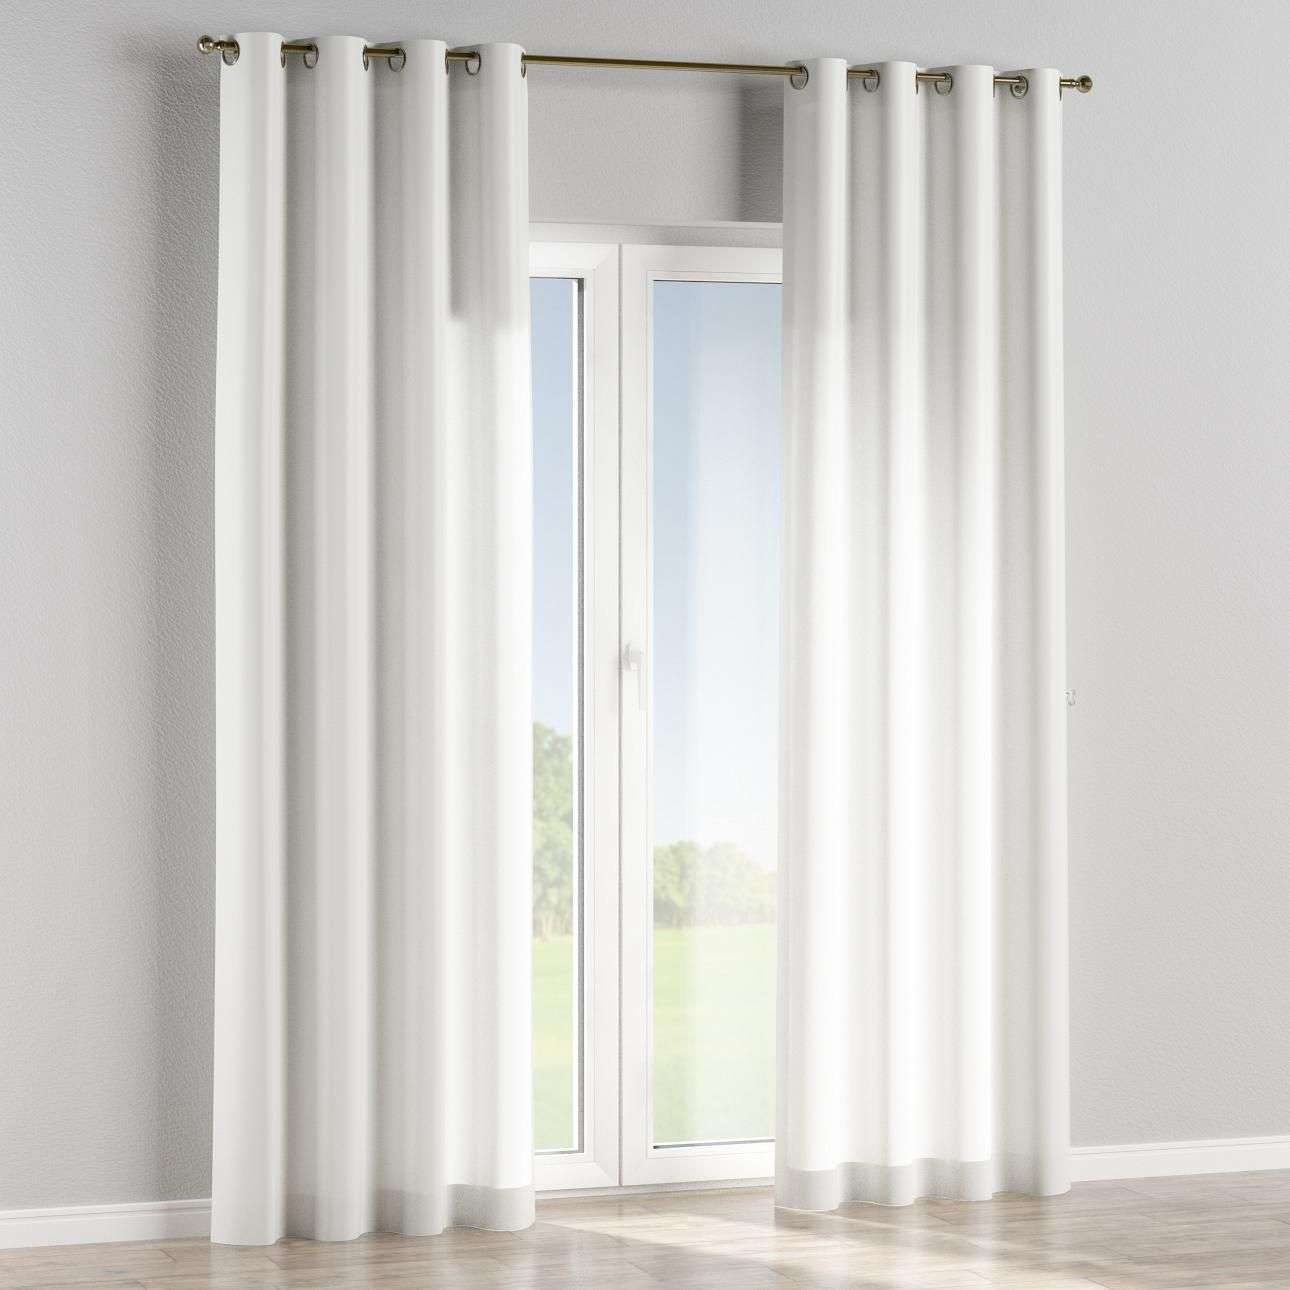 Eyelet curtains in collection Bristol, fabric: 125-25